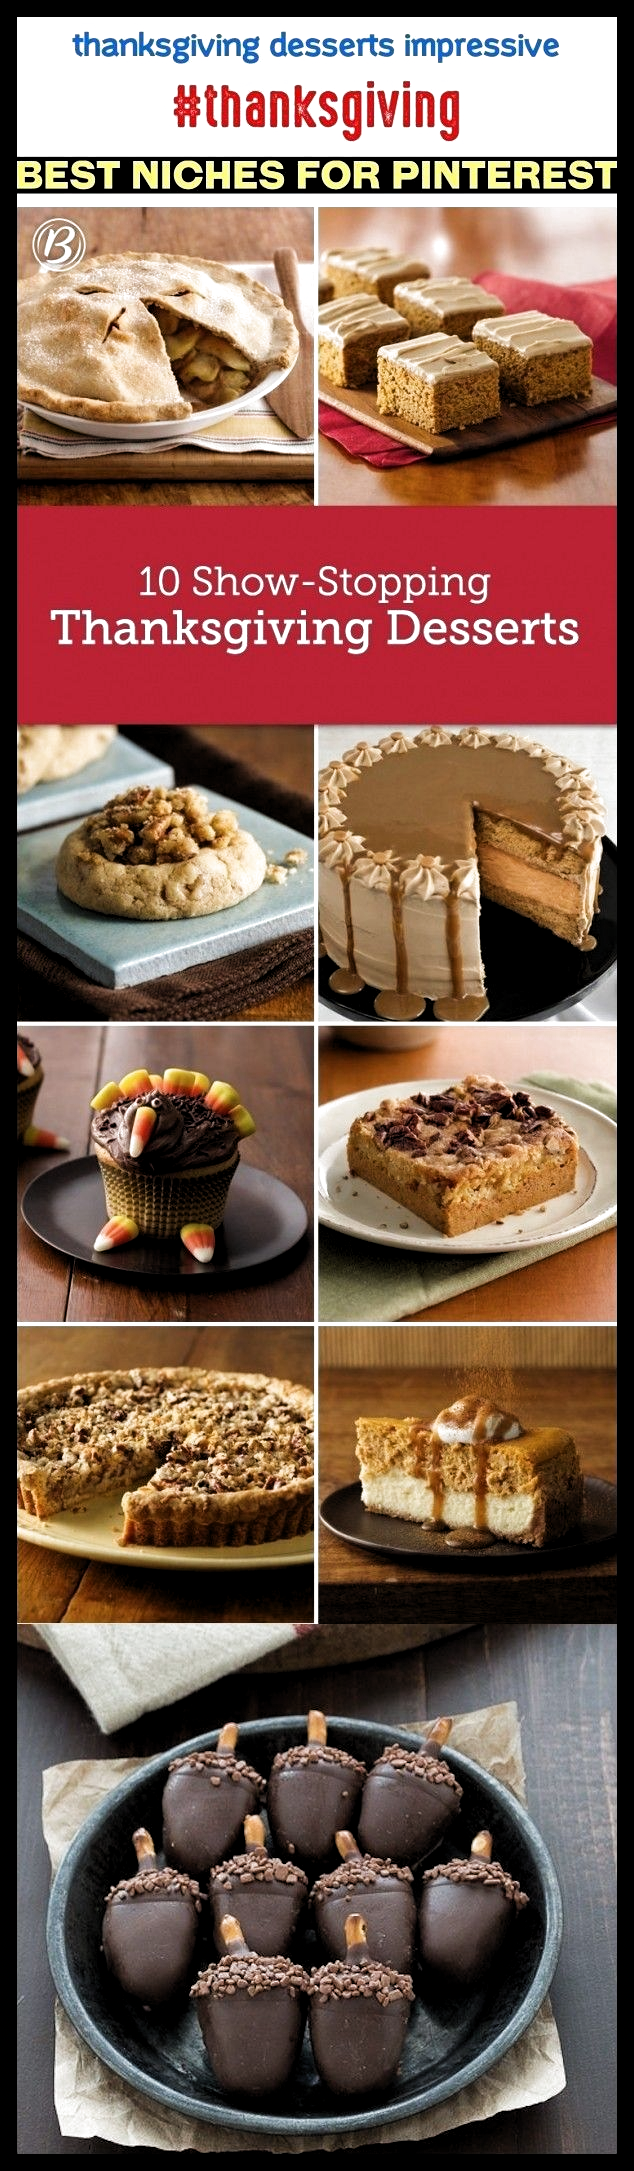 Thanksgiving Desserts Impressive Party Thanksgiving Desserts Easy Thanksgiving D Thanksgiving Desserts Thanksgiving Food Desserts Thanksgiving Desserts Easy